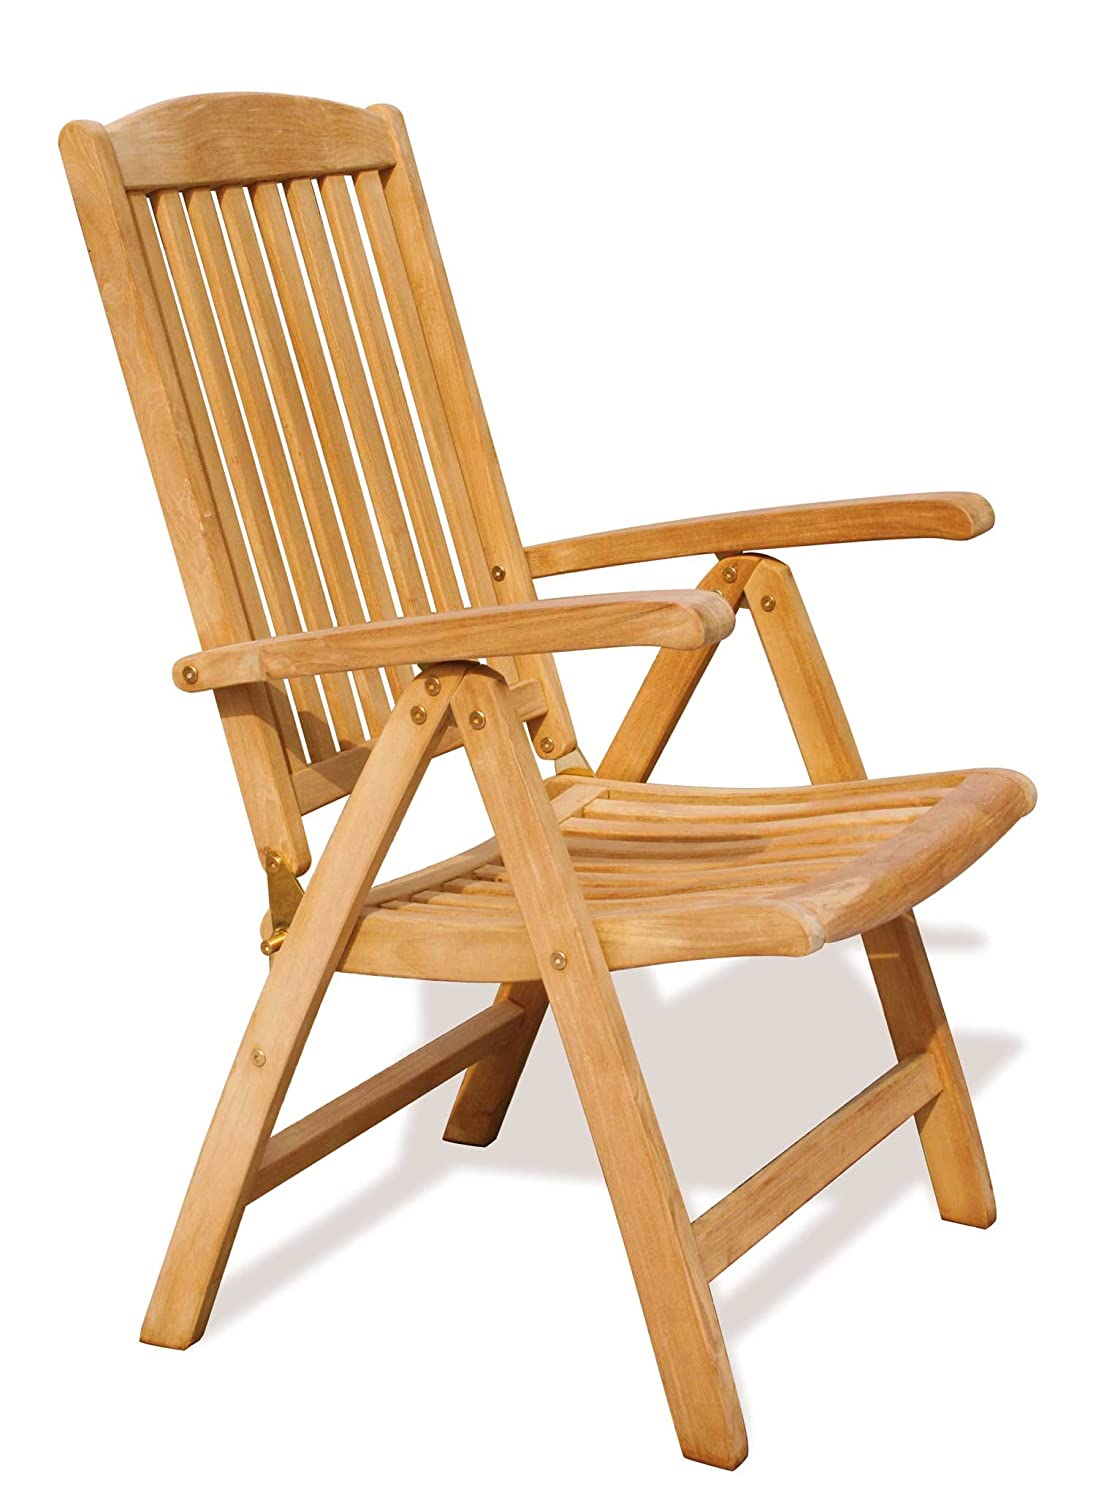 Tewkesbury Garden Reclining Chair - Sustainable Teak Garden Recliner Chair - Jati Brand Quality u0026 Value Amazon.co.uk Garden u0026 Outdoors  sc 1 st  Amazon UK & Tewkesbury Garden Reclining Chair - Sustainable Teak Garden ... islam-shia.org